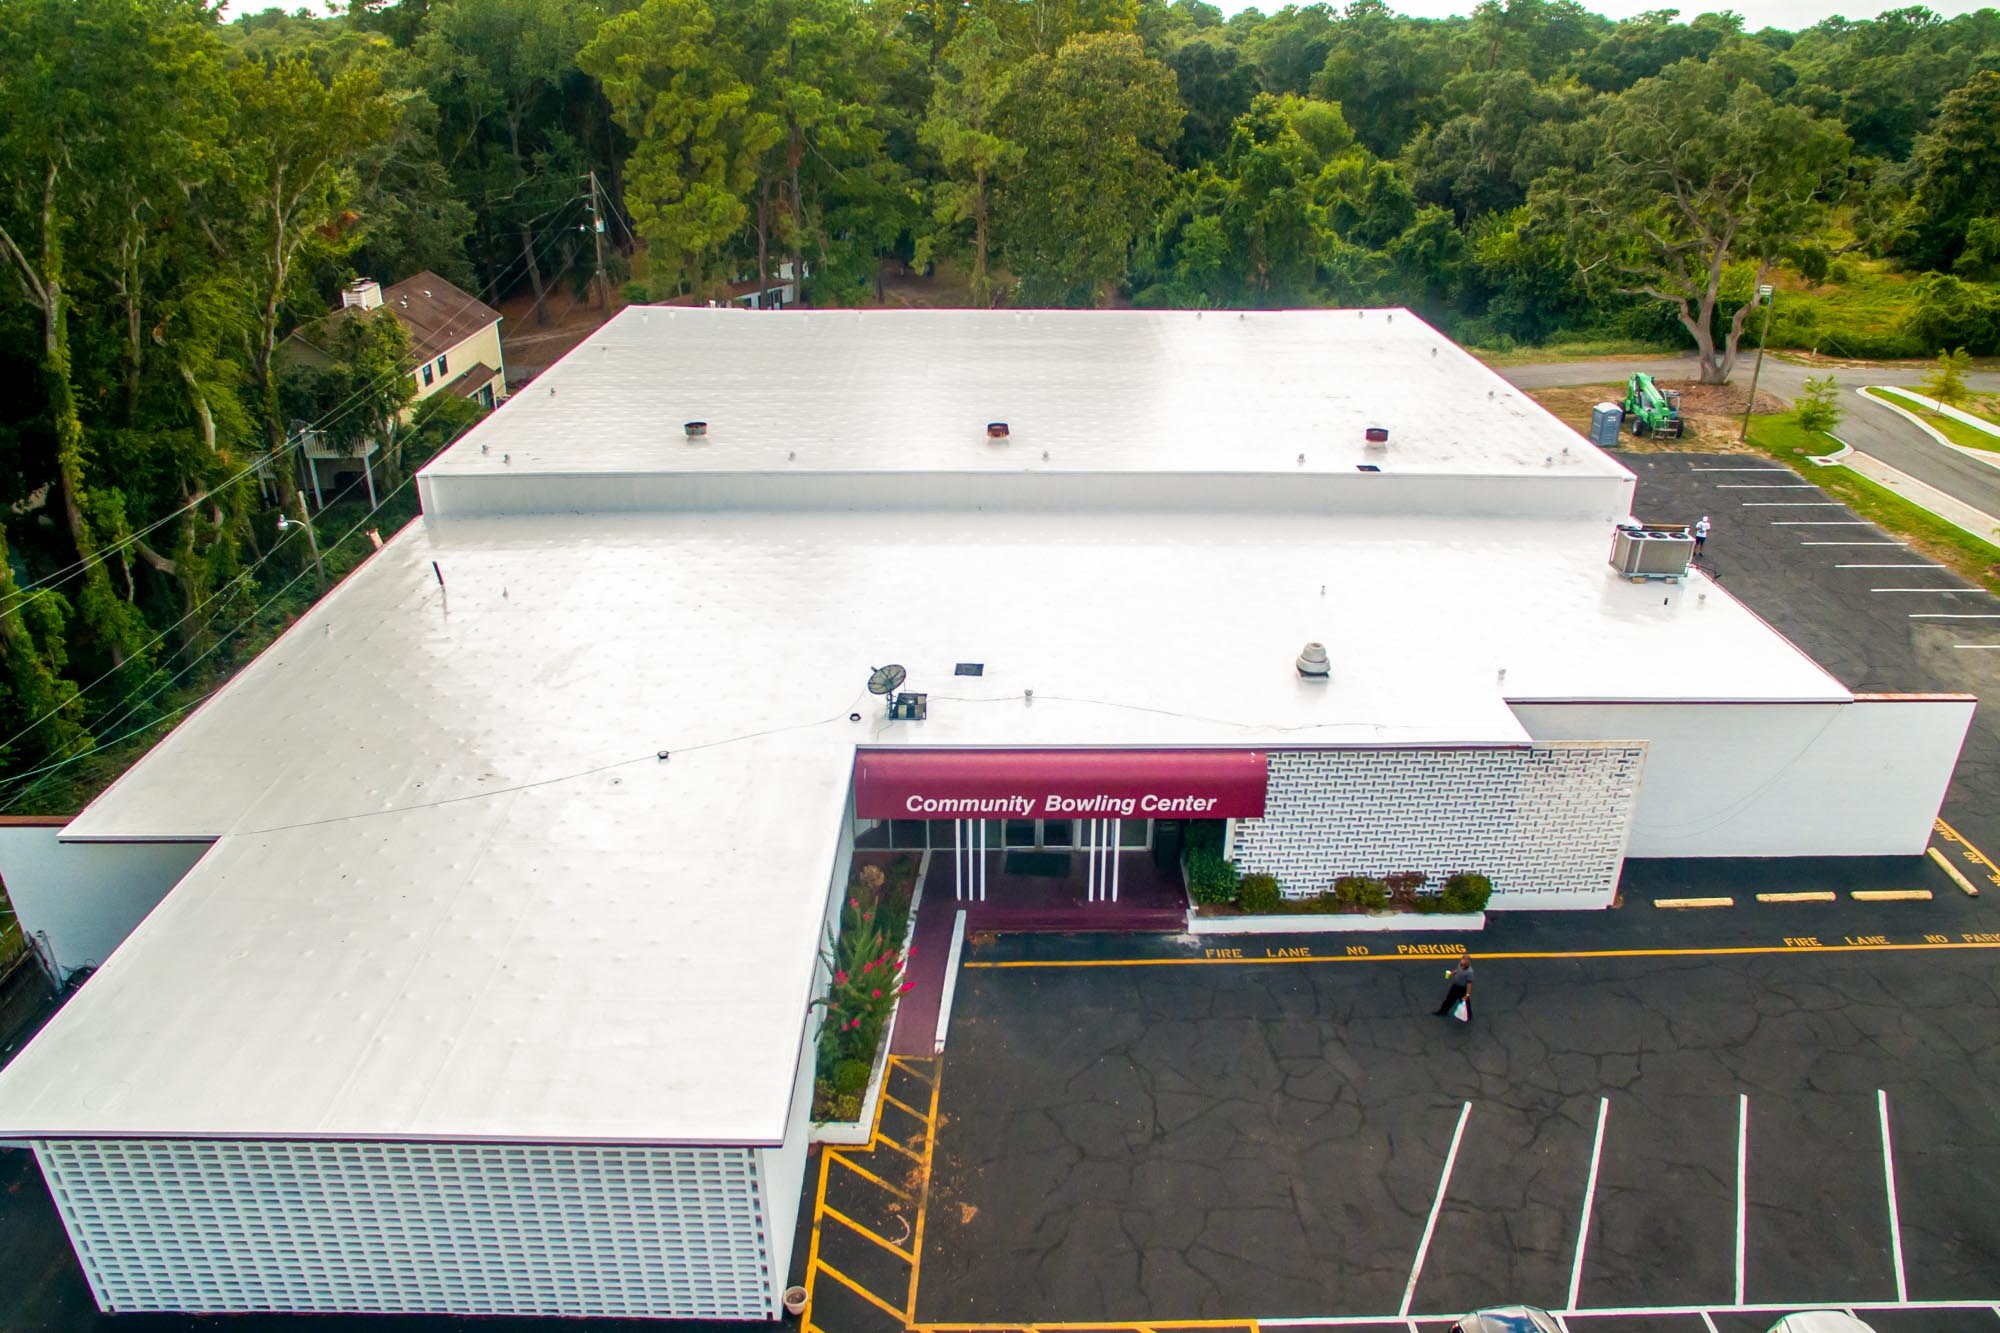 Roof_image-7